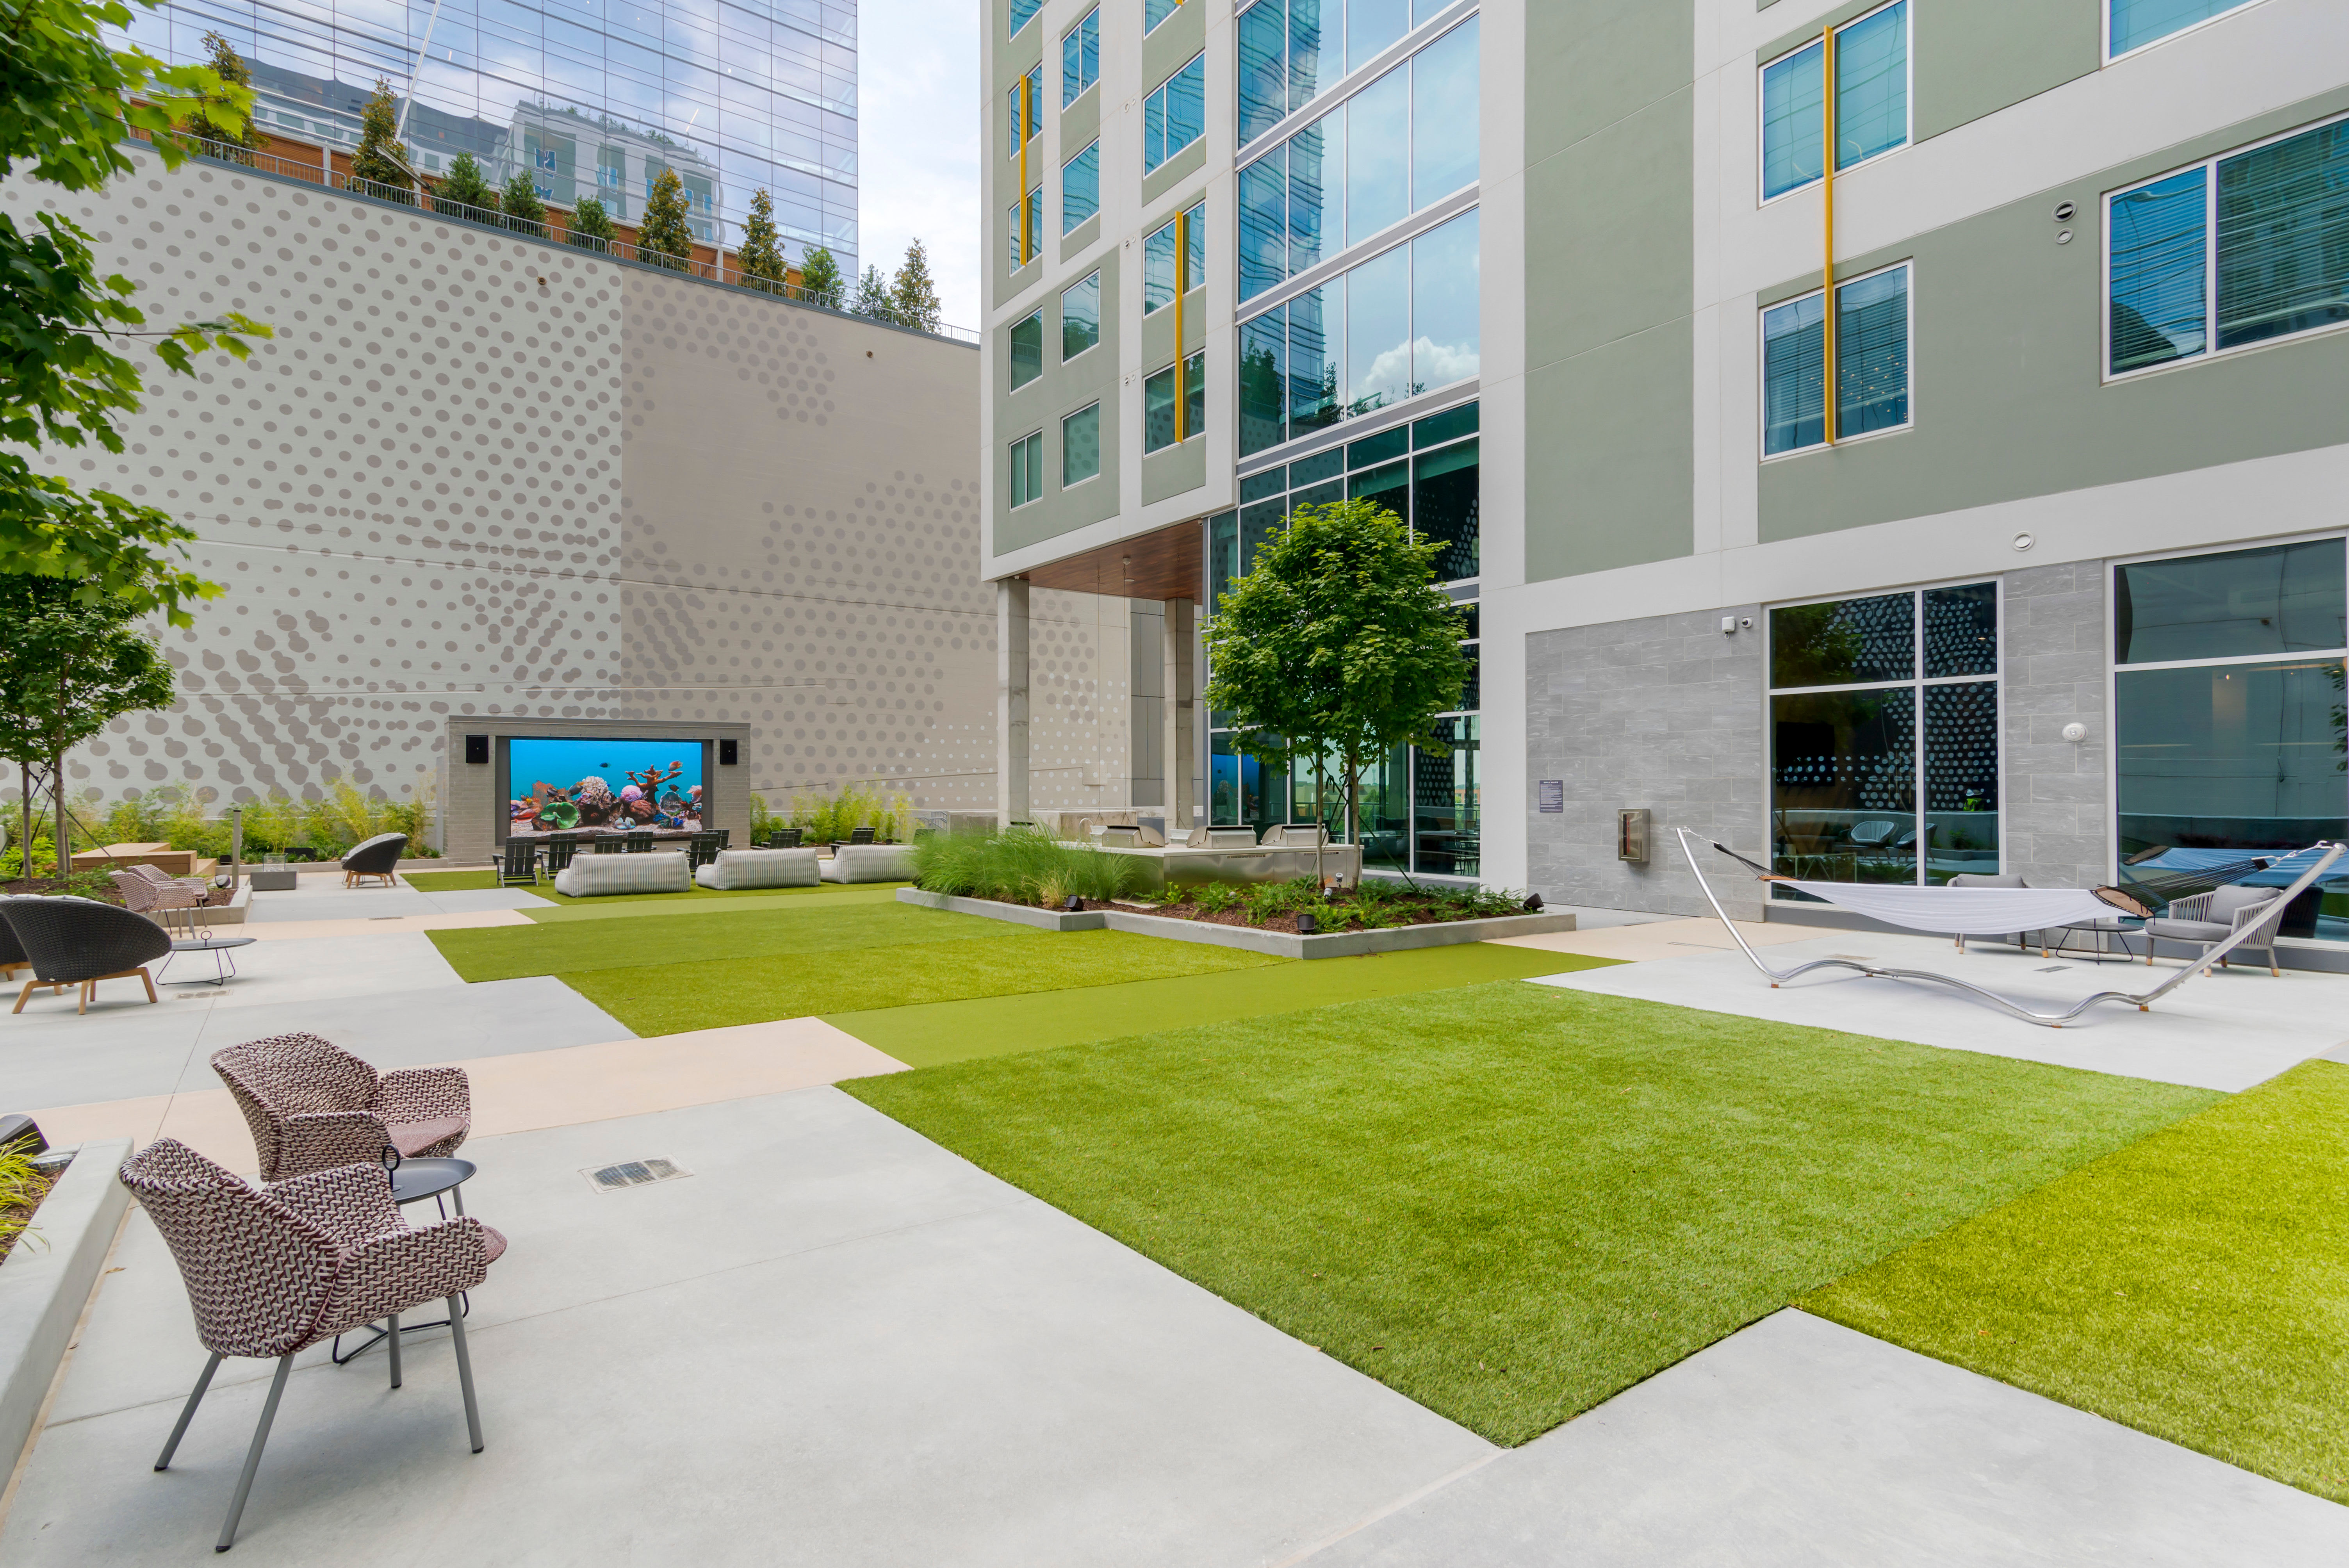 Outdoor lounge area for student residents at HERE Atlanta in Atlanta, Georgia